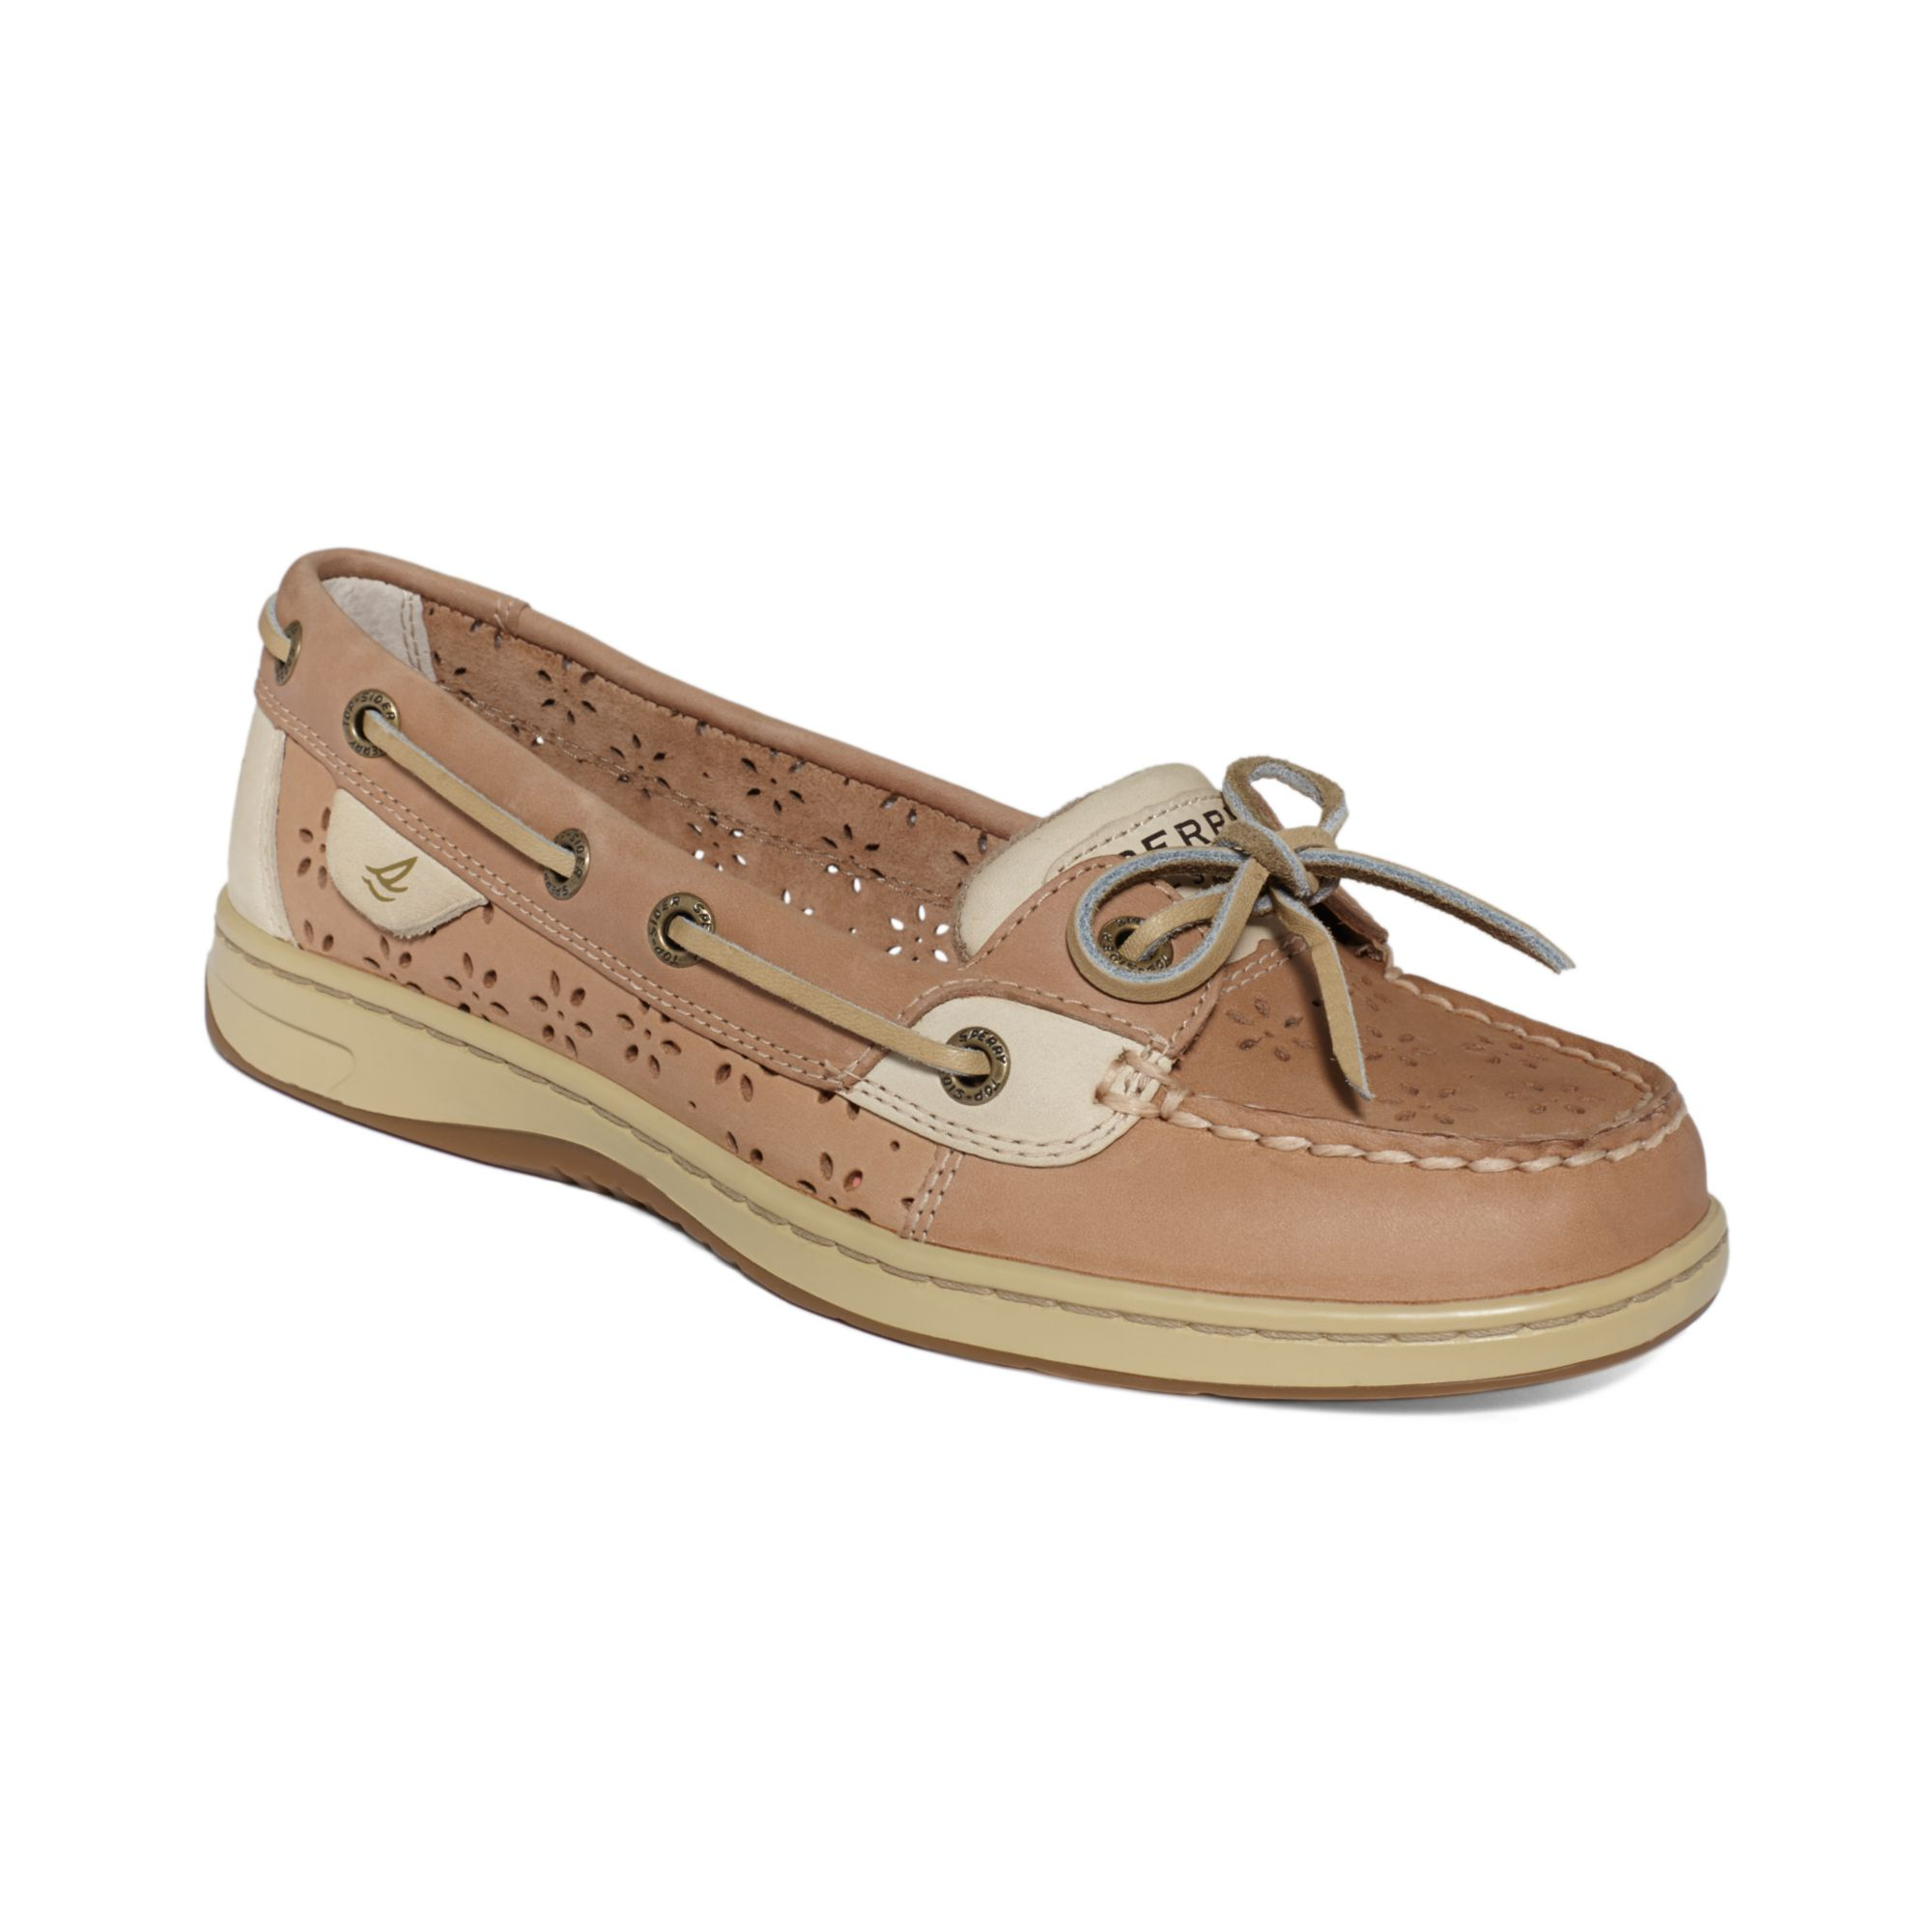 Womens Boat Shoes New Look